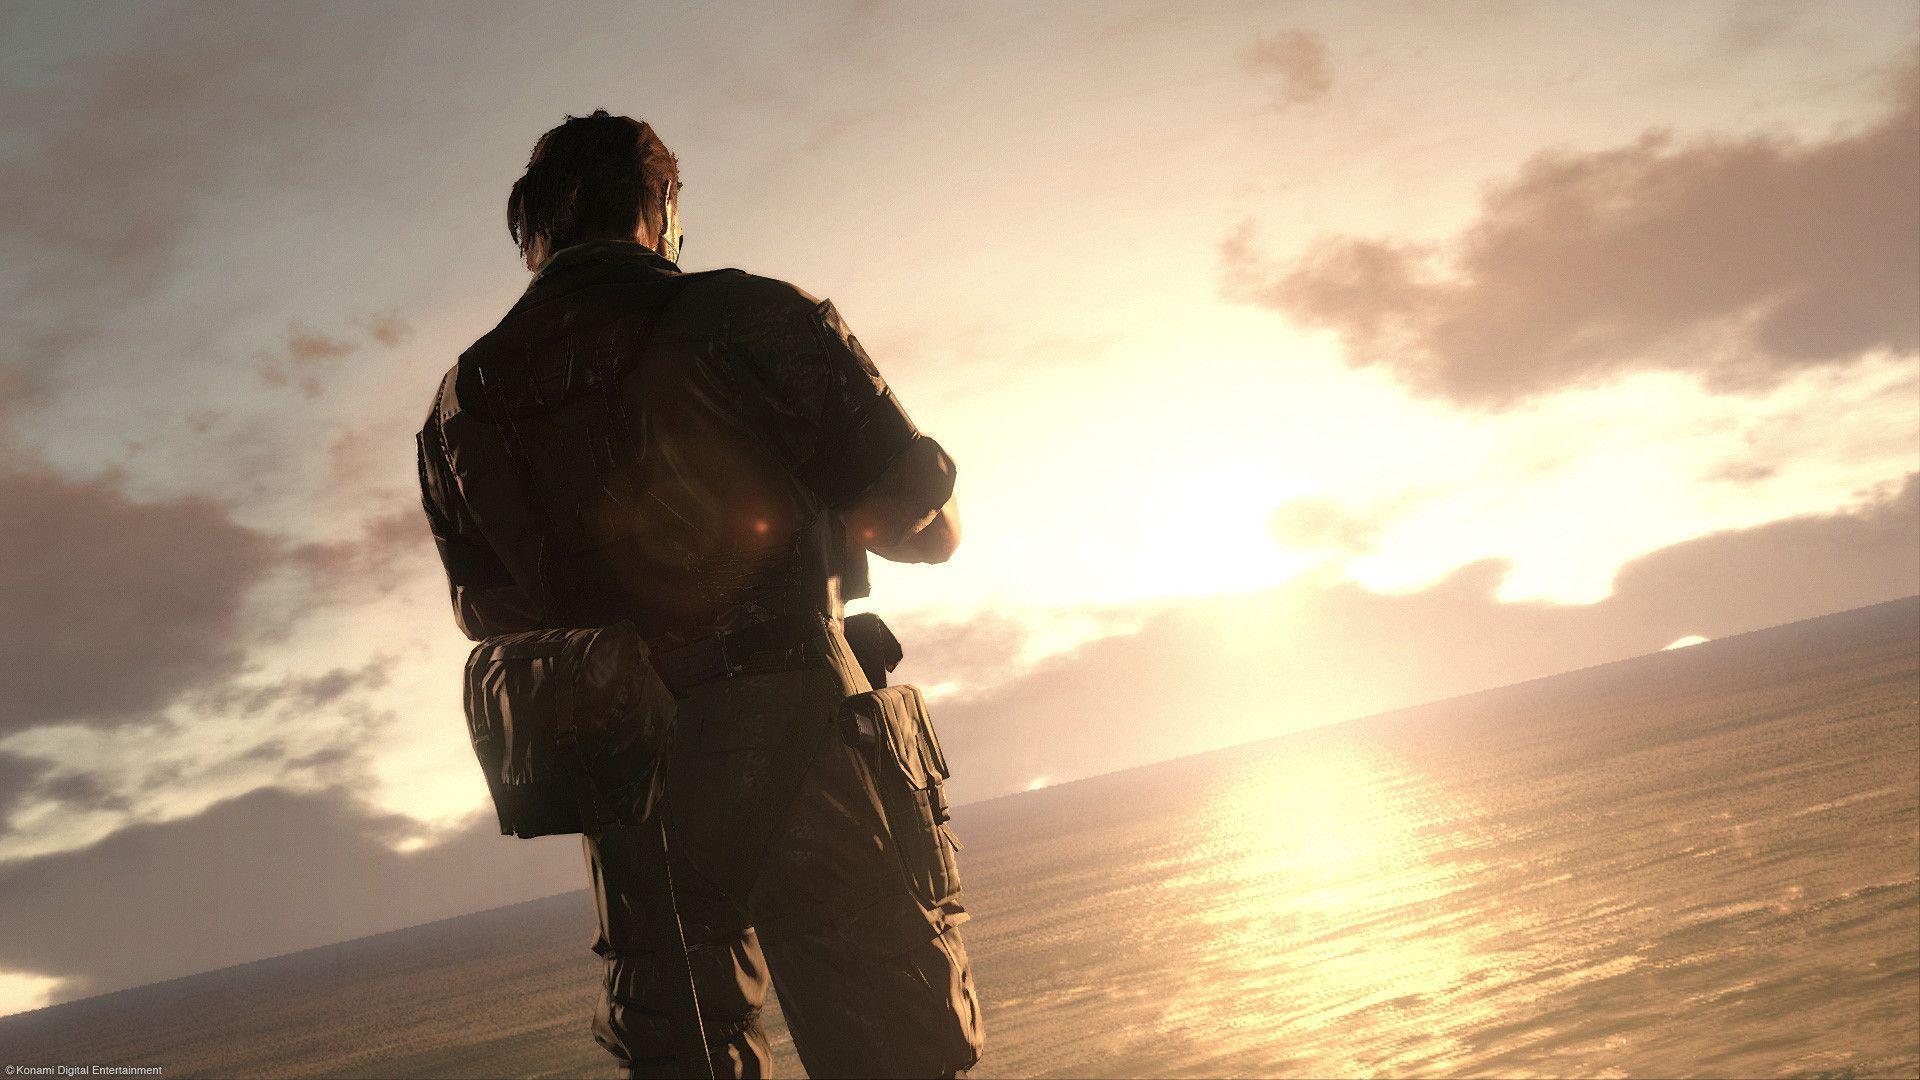 Metal Gear Solid V: The Phantom Pain 3 Cool Hd Wallpaper ...